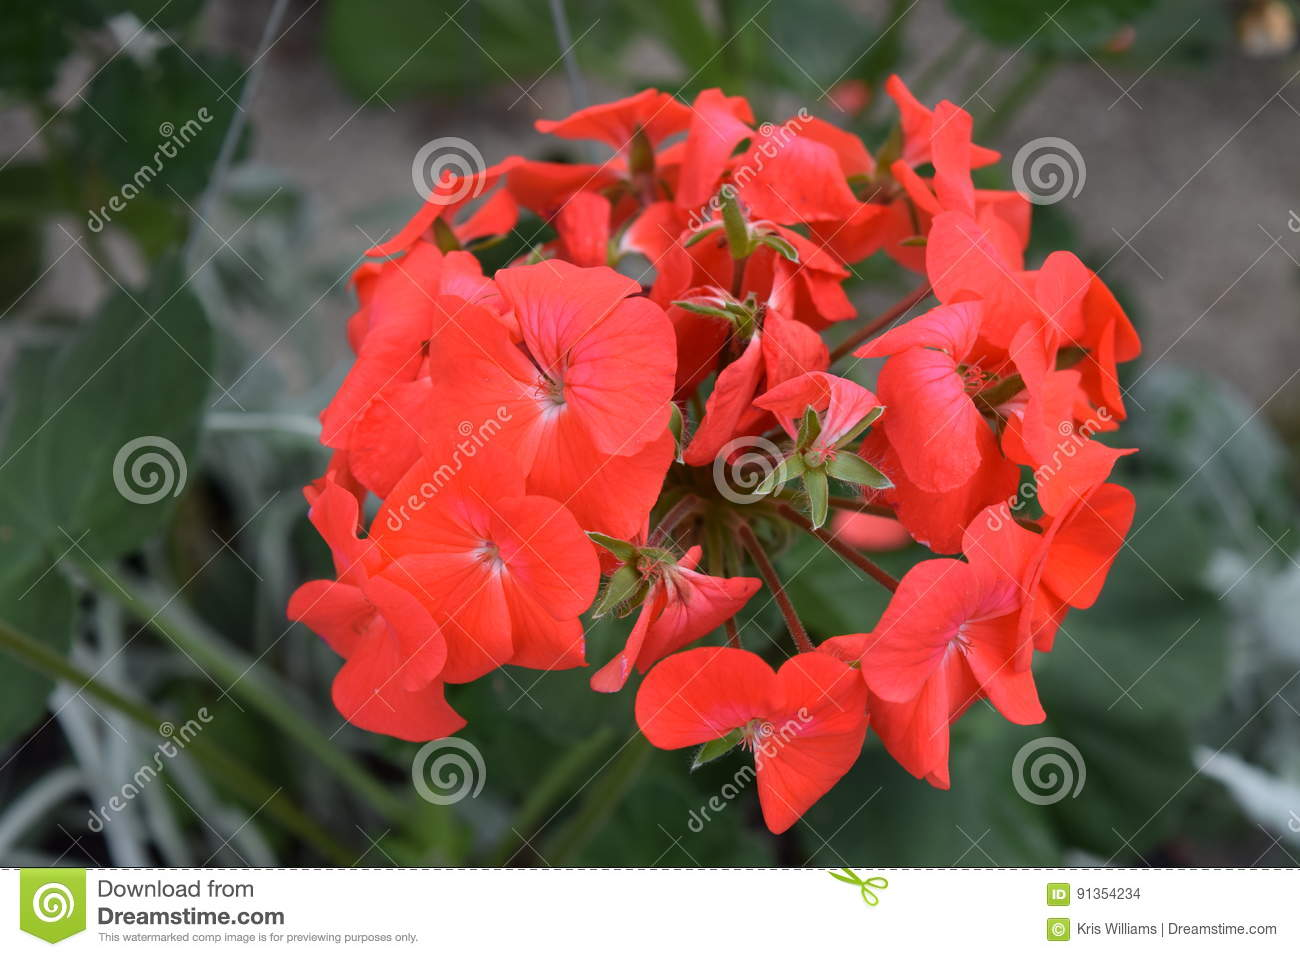 Red geranium bloom with several stemmed flowers